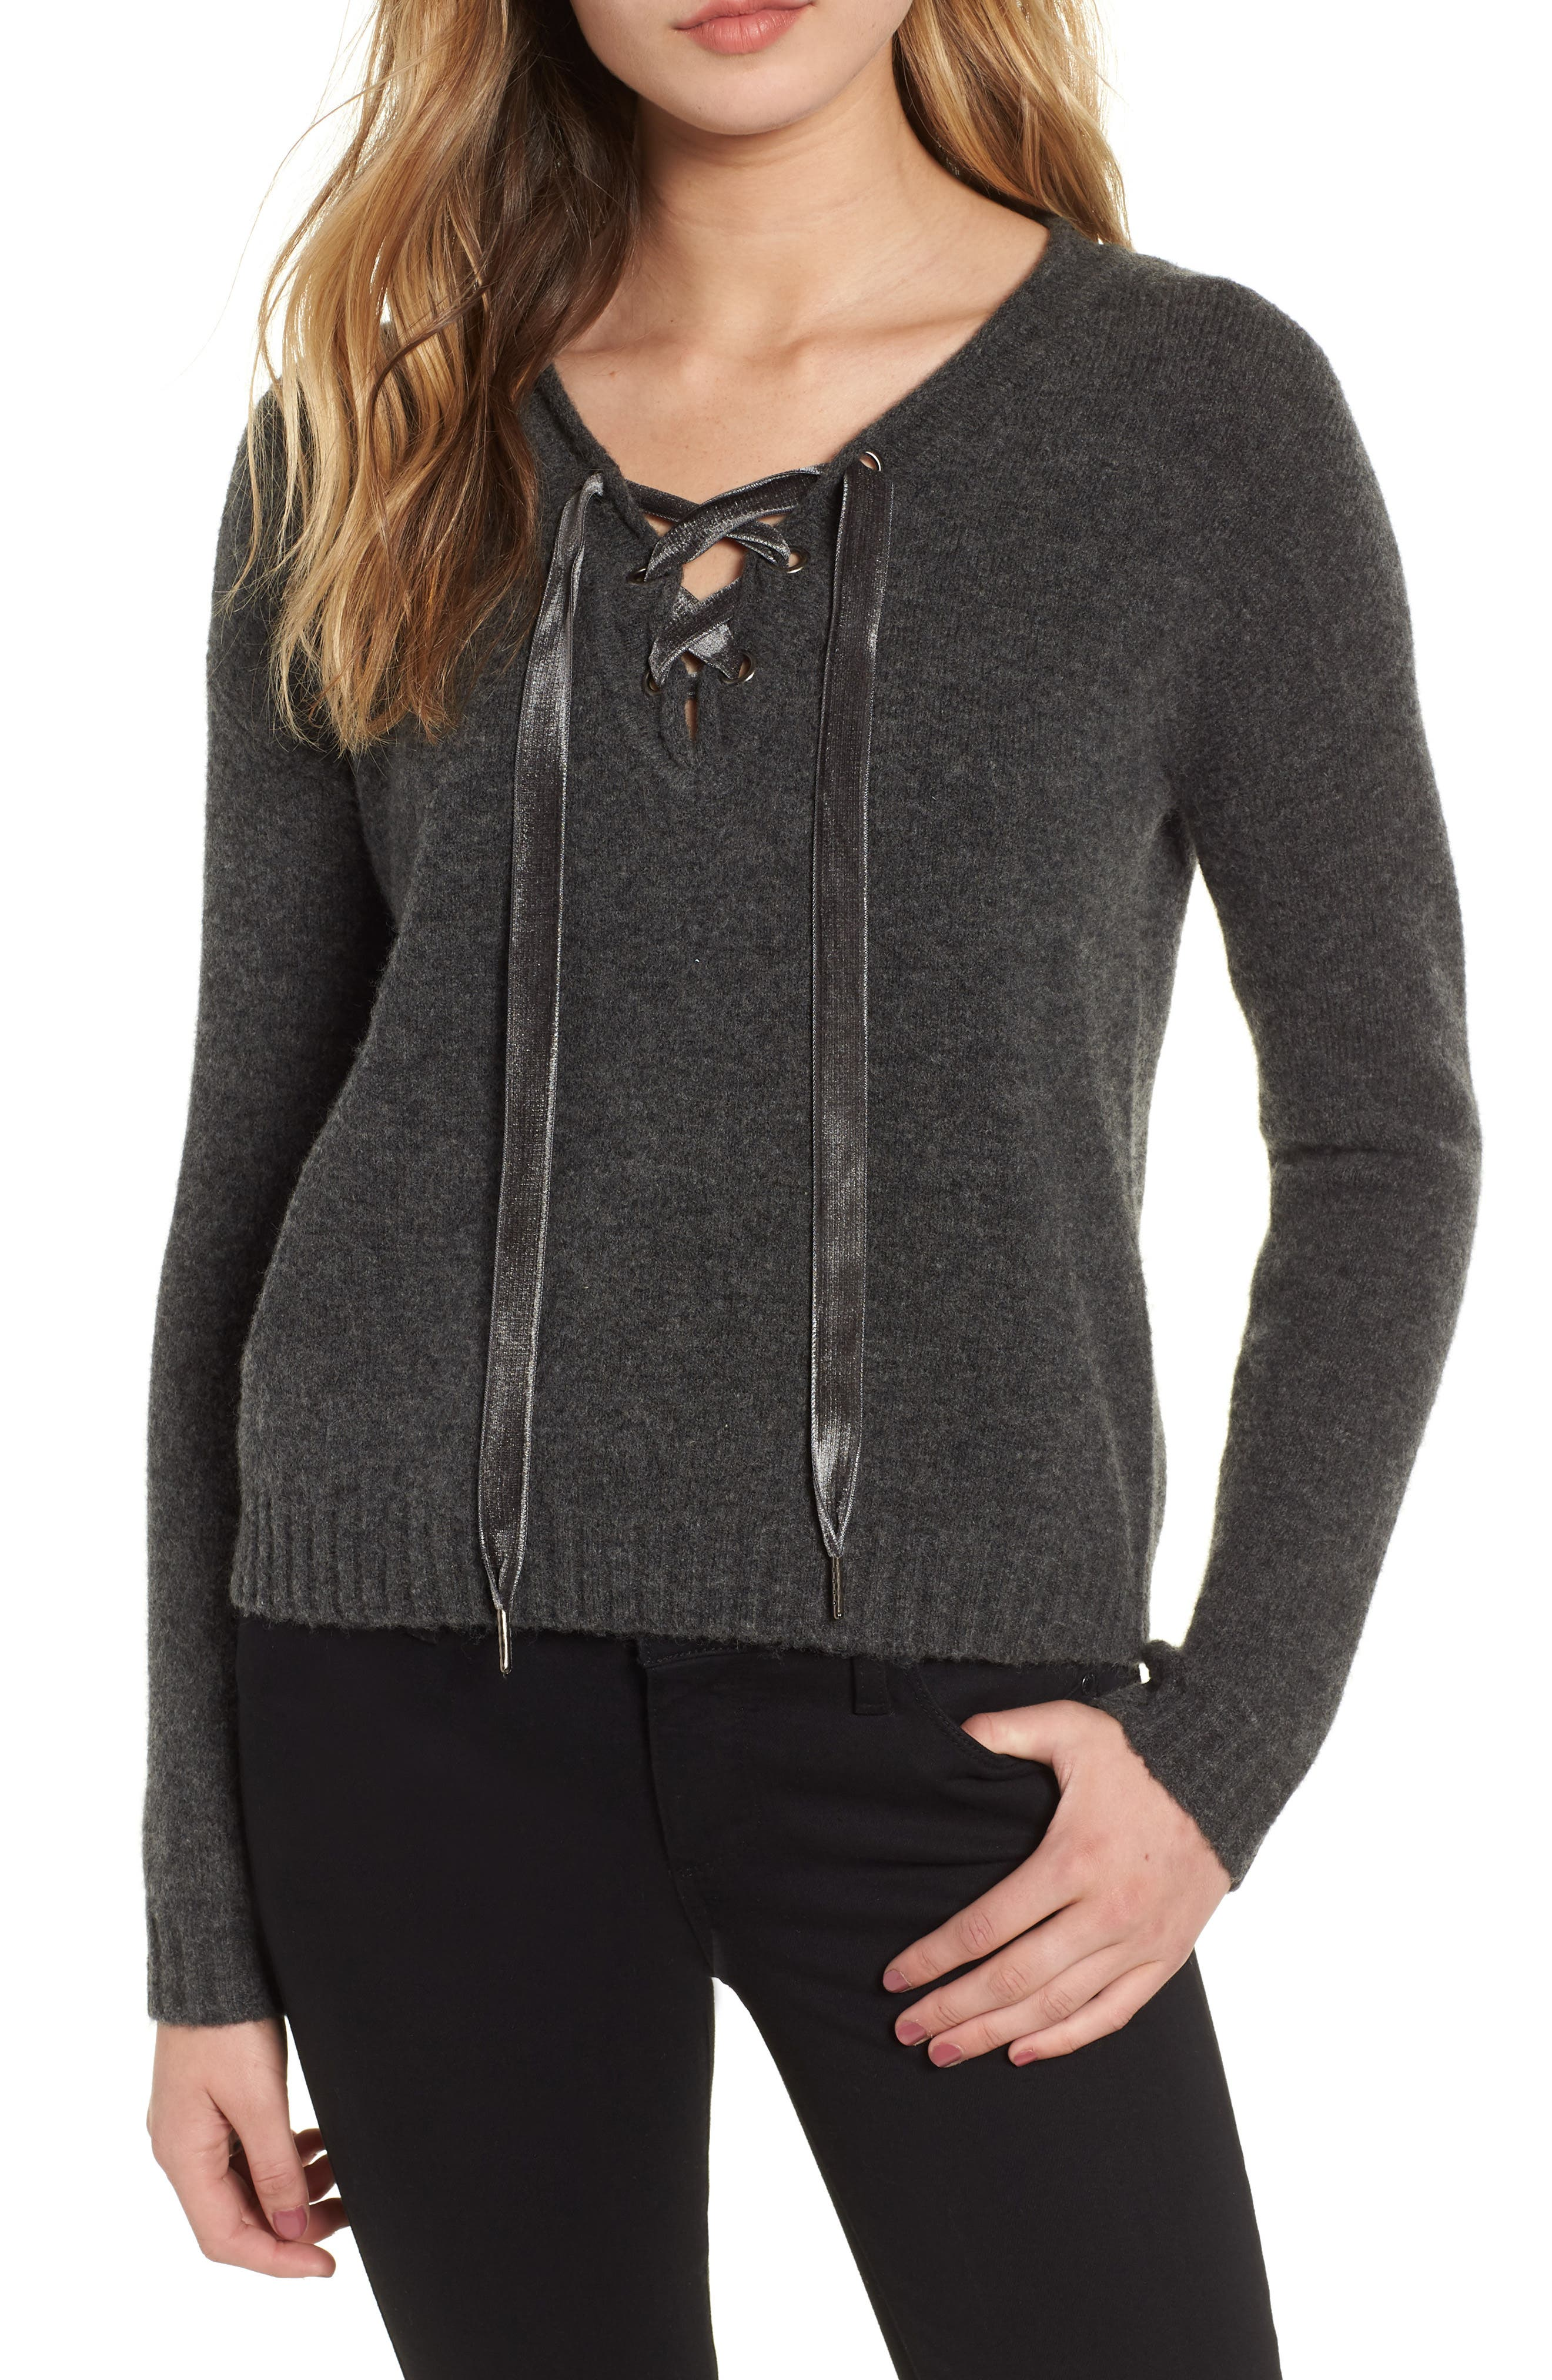 Amelia Lace-Up Wool & Cashmere Blend Sweater in Charcoal